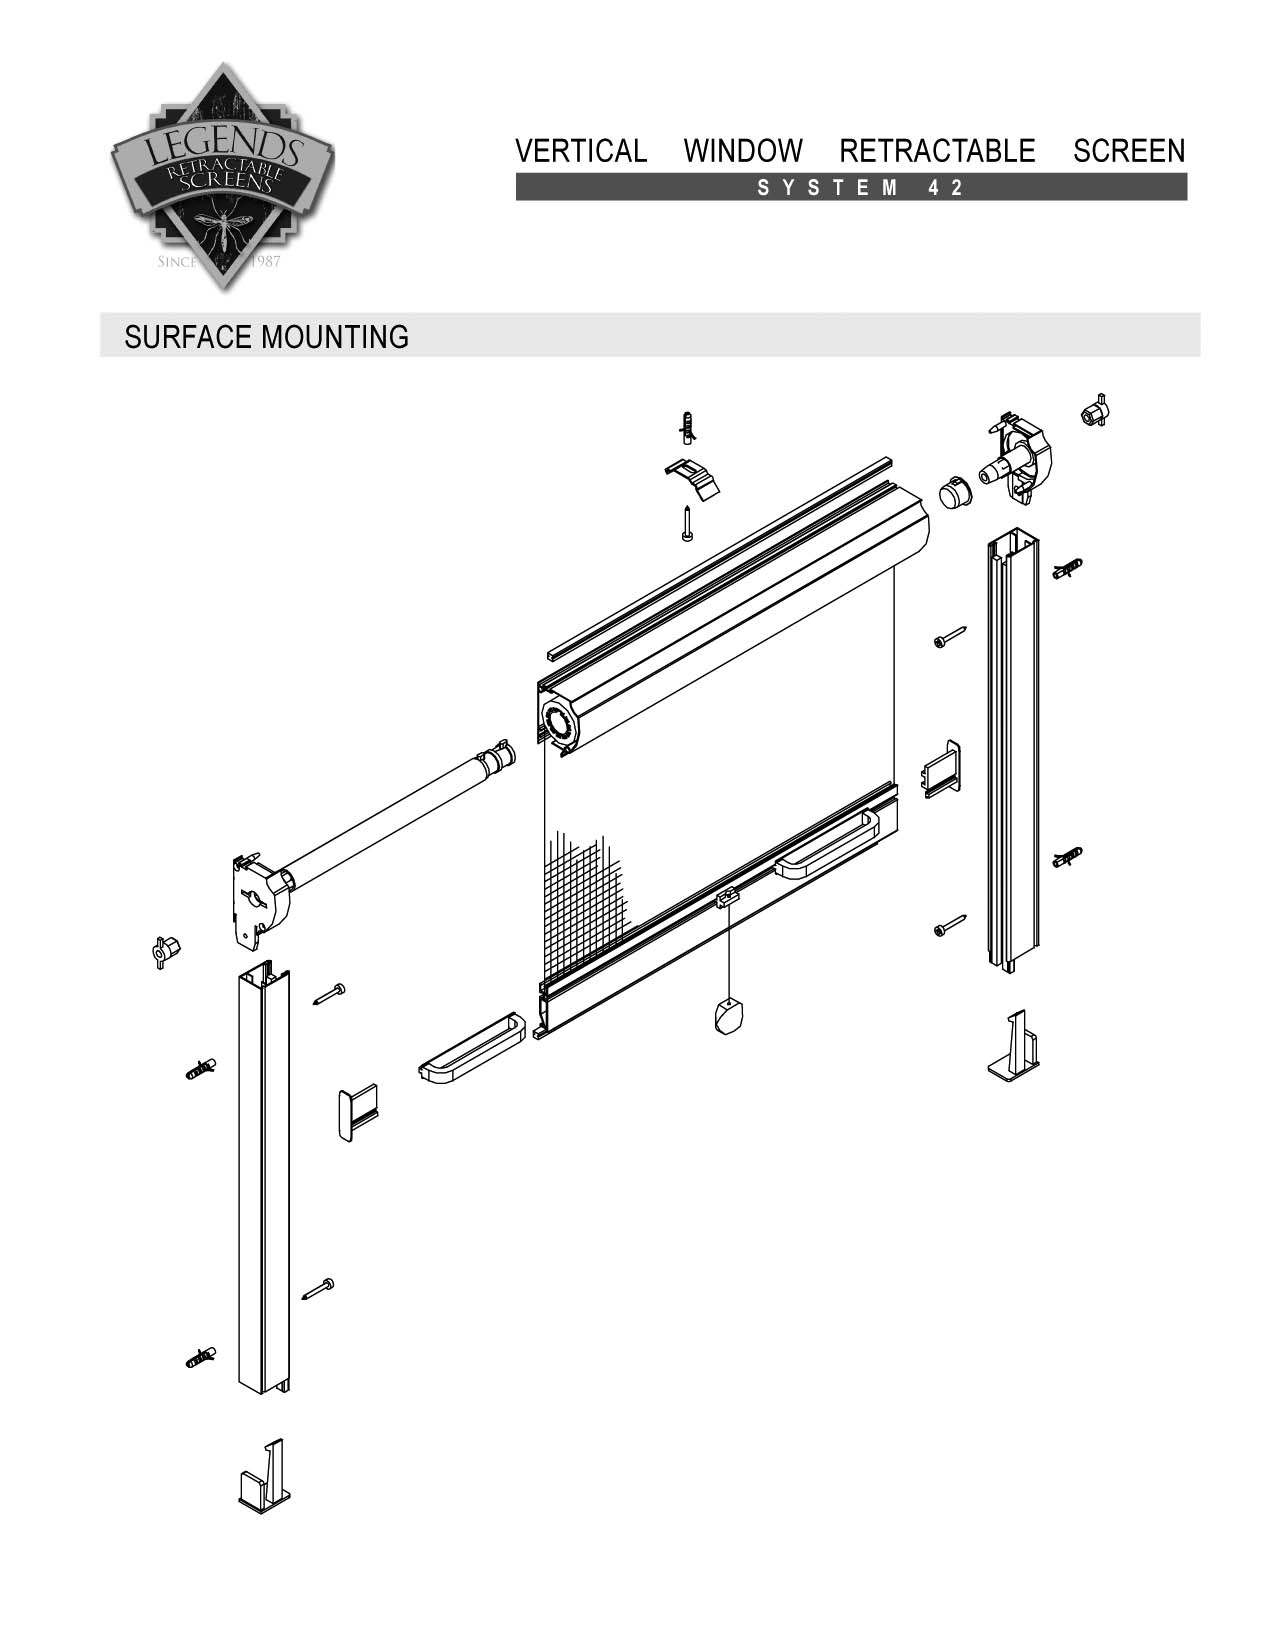 Window Screen Installation Instructions Images Form 1040